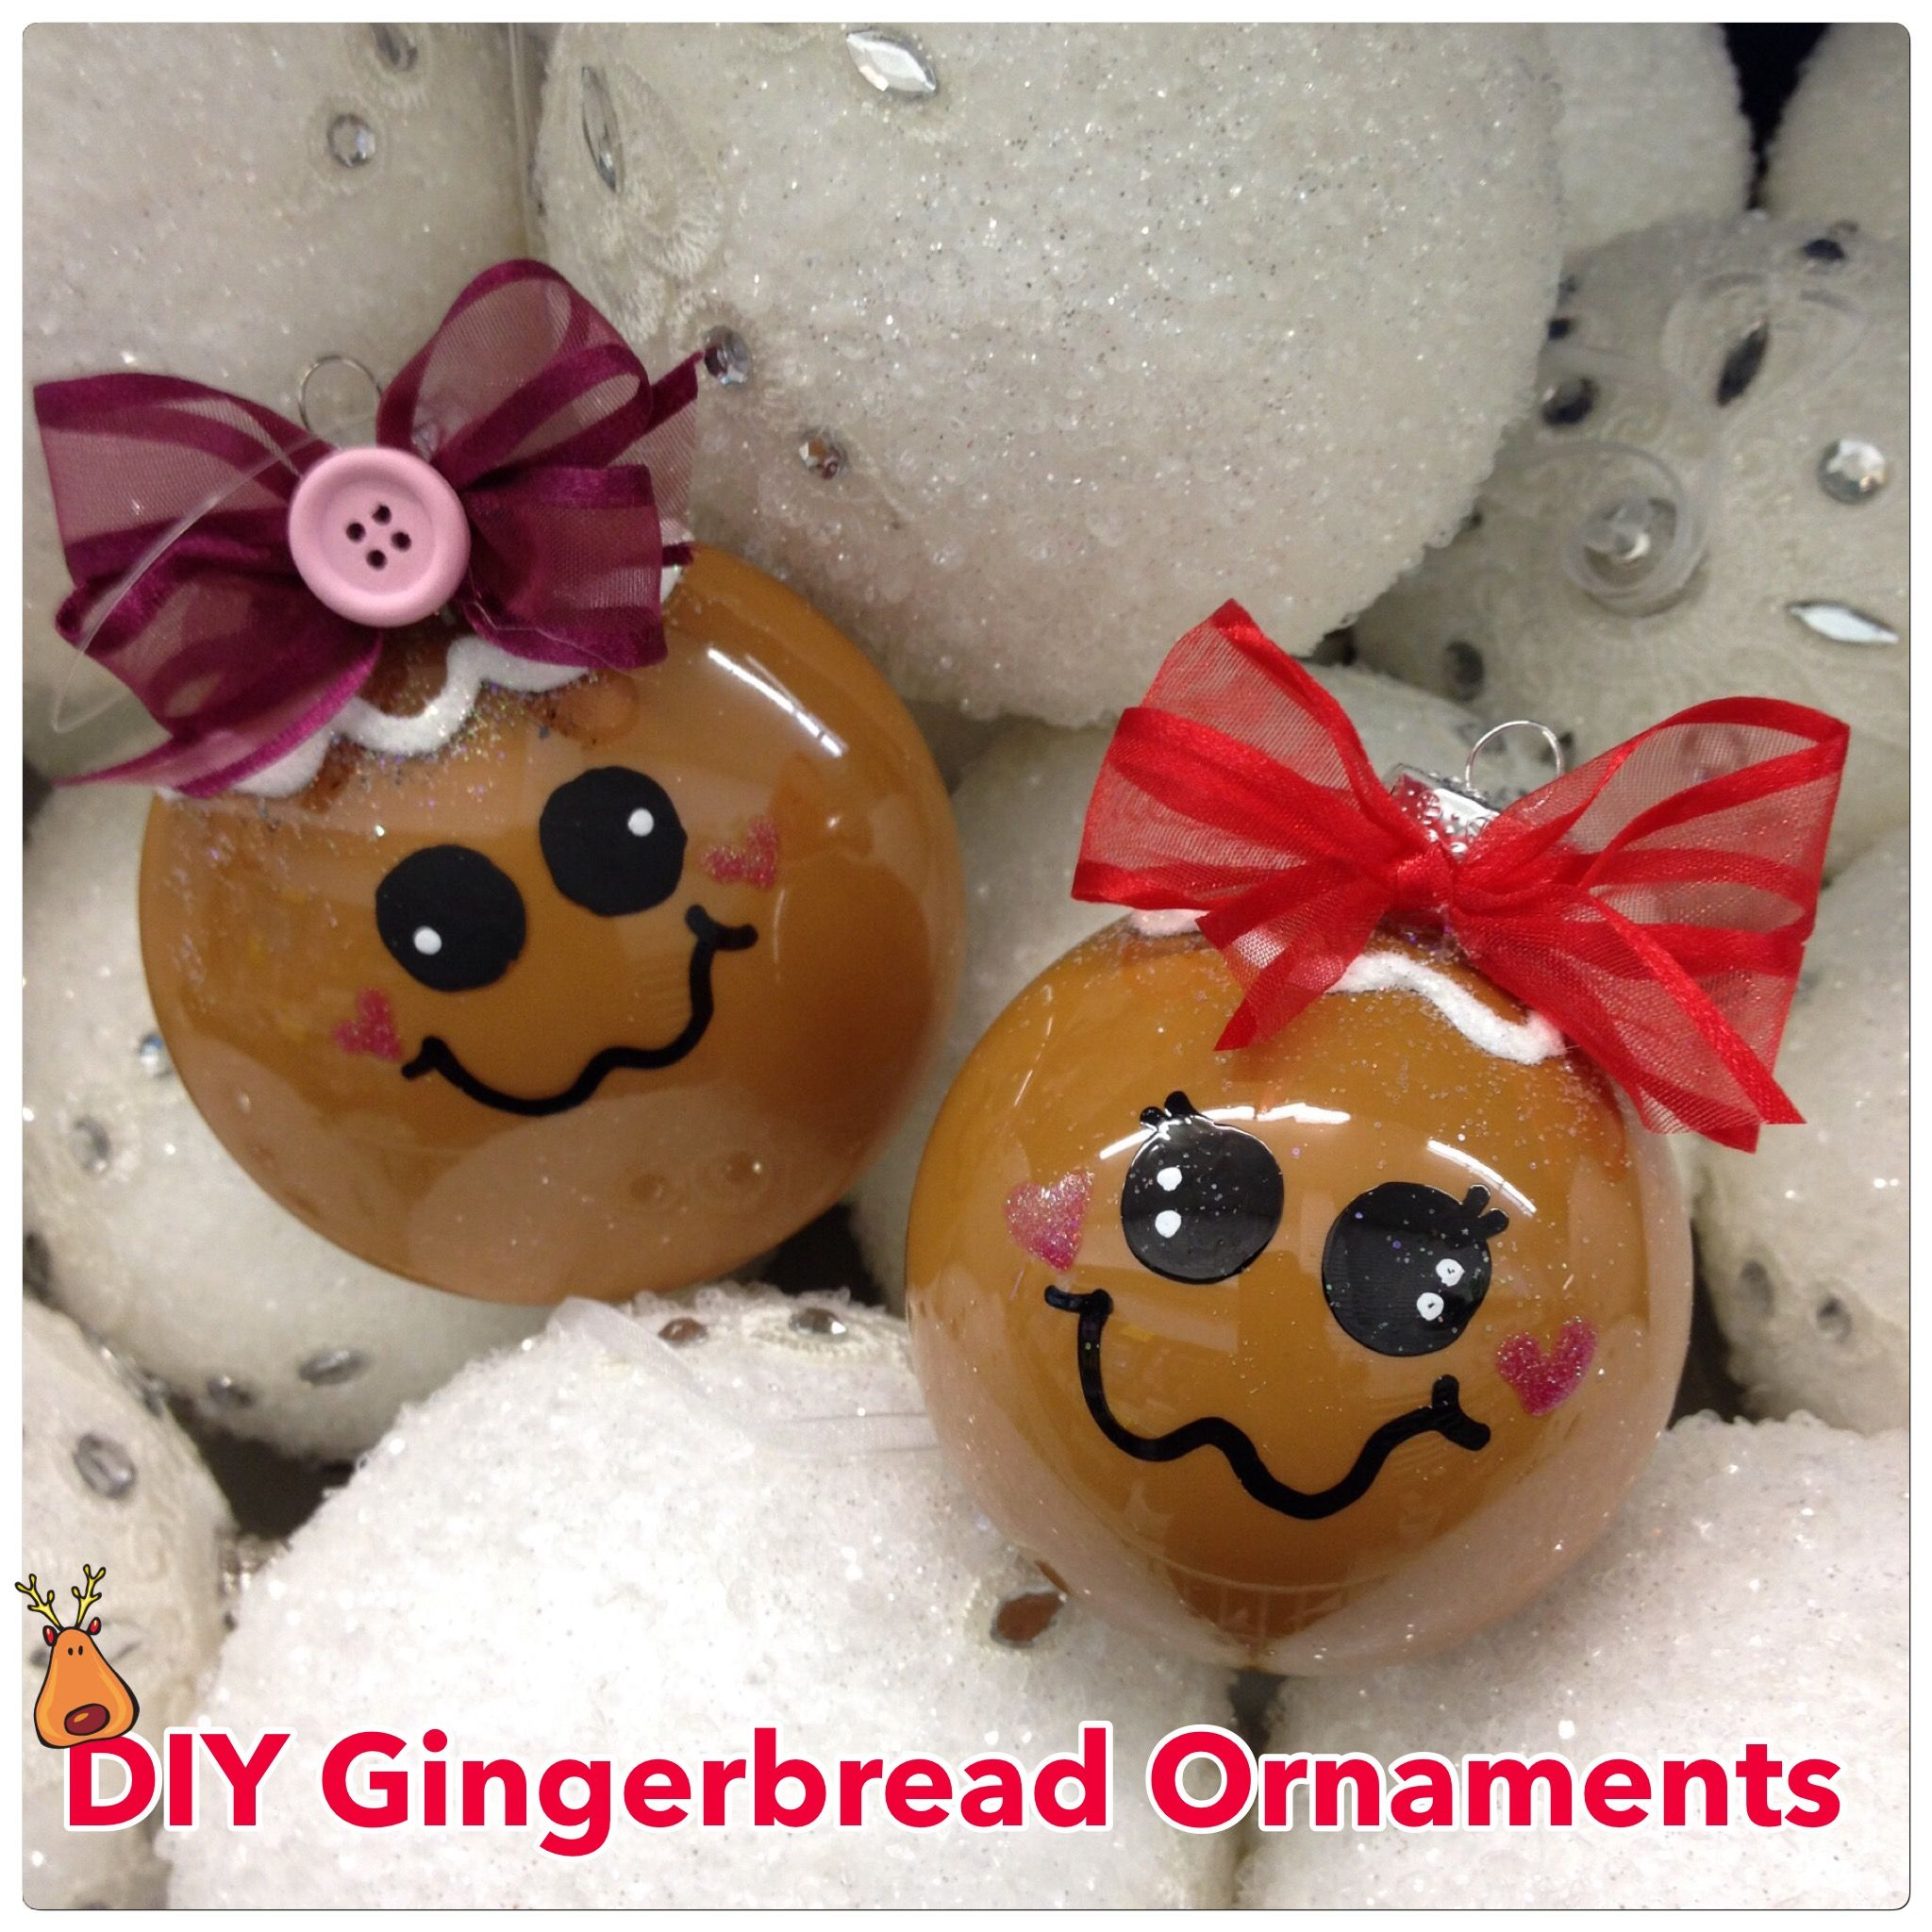 Diy Gingerbread Ball Ornament Pour Tan Paint Inside The Clear Ball Let Dr Diy Christmas Ornaments Easy Clear Christmas Ornaments Christmas Ornaments Homemade